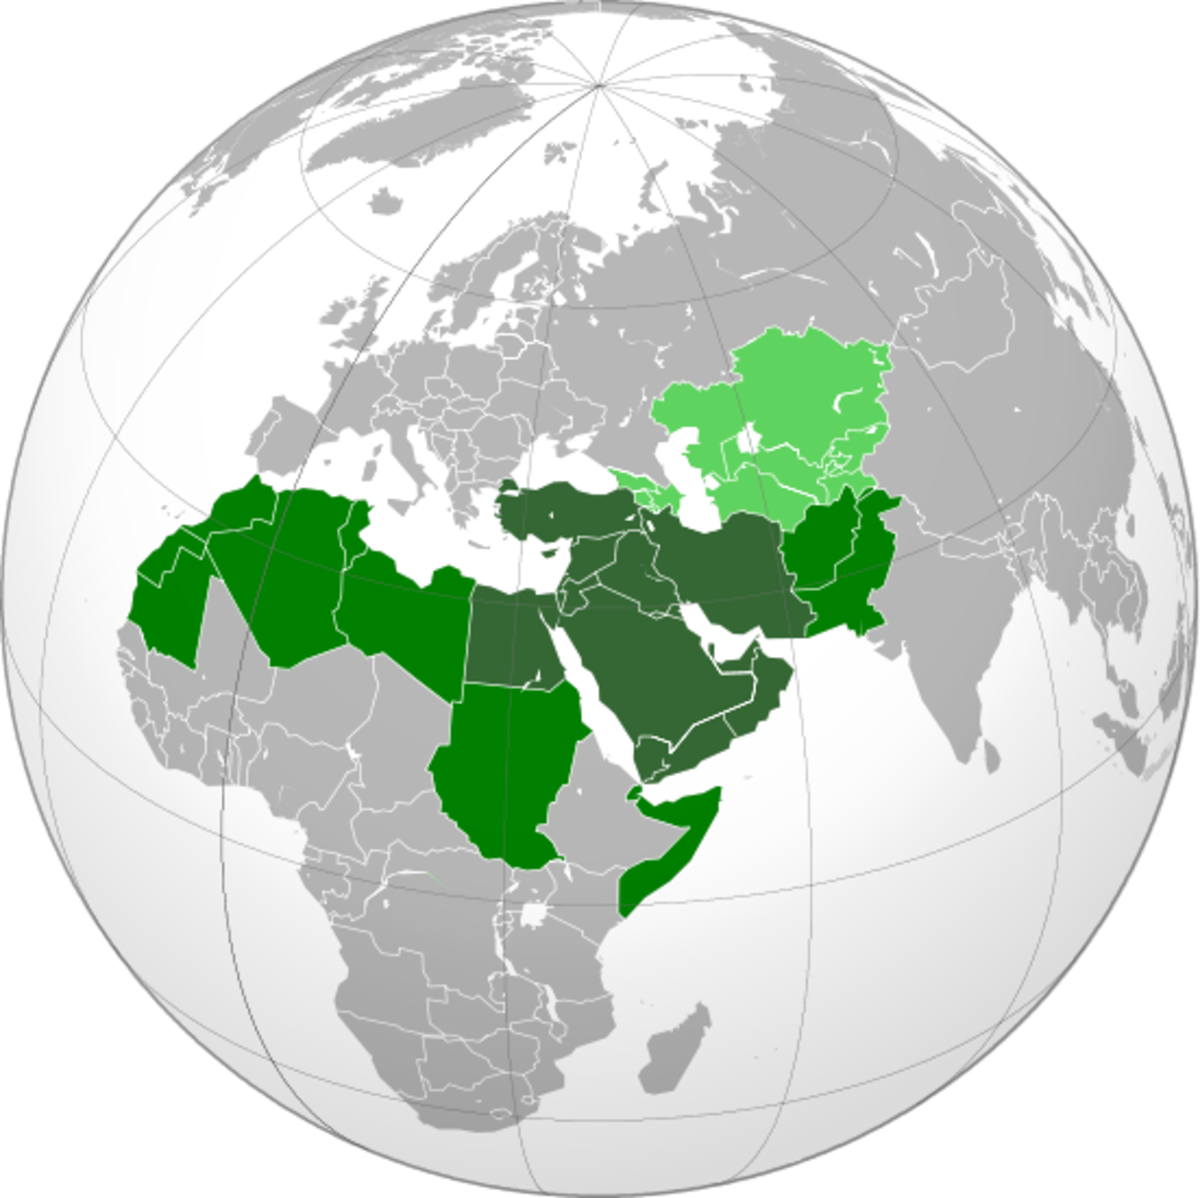 Map of the Greater Middle East, including North Africa and Western Asia.